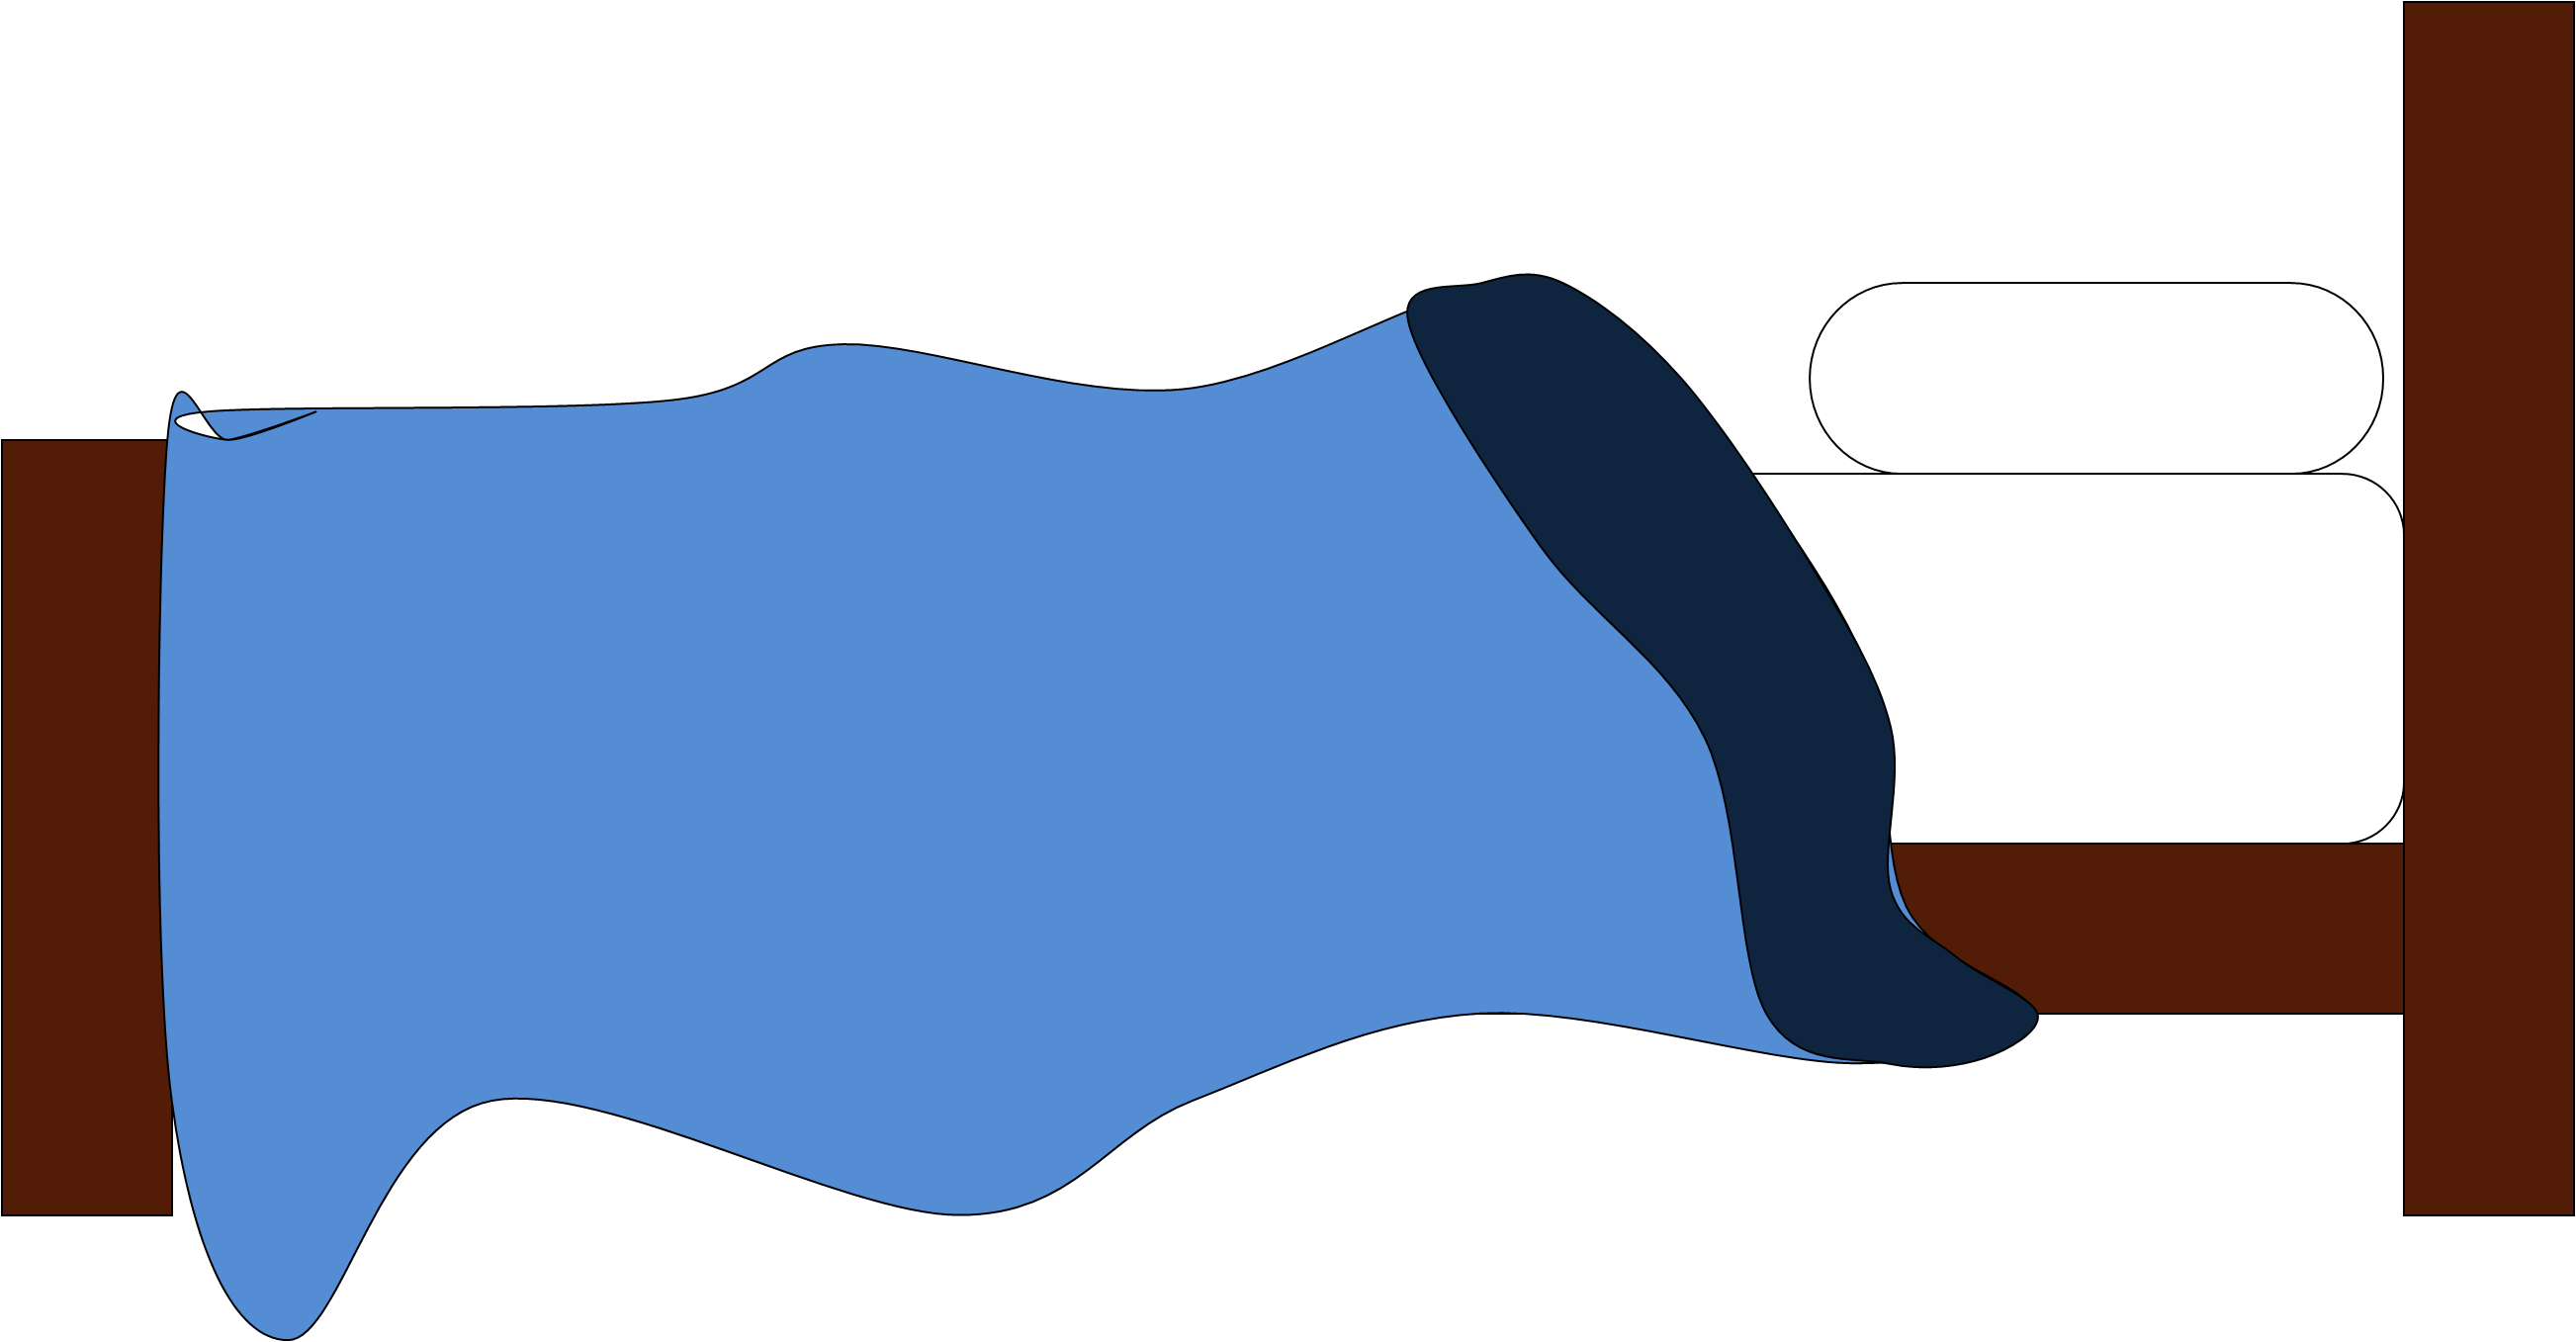 Bed Clipart Side View.